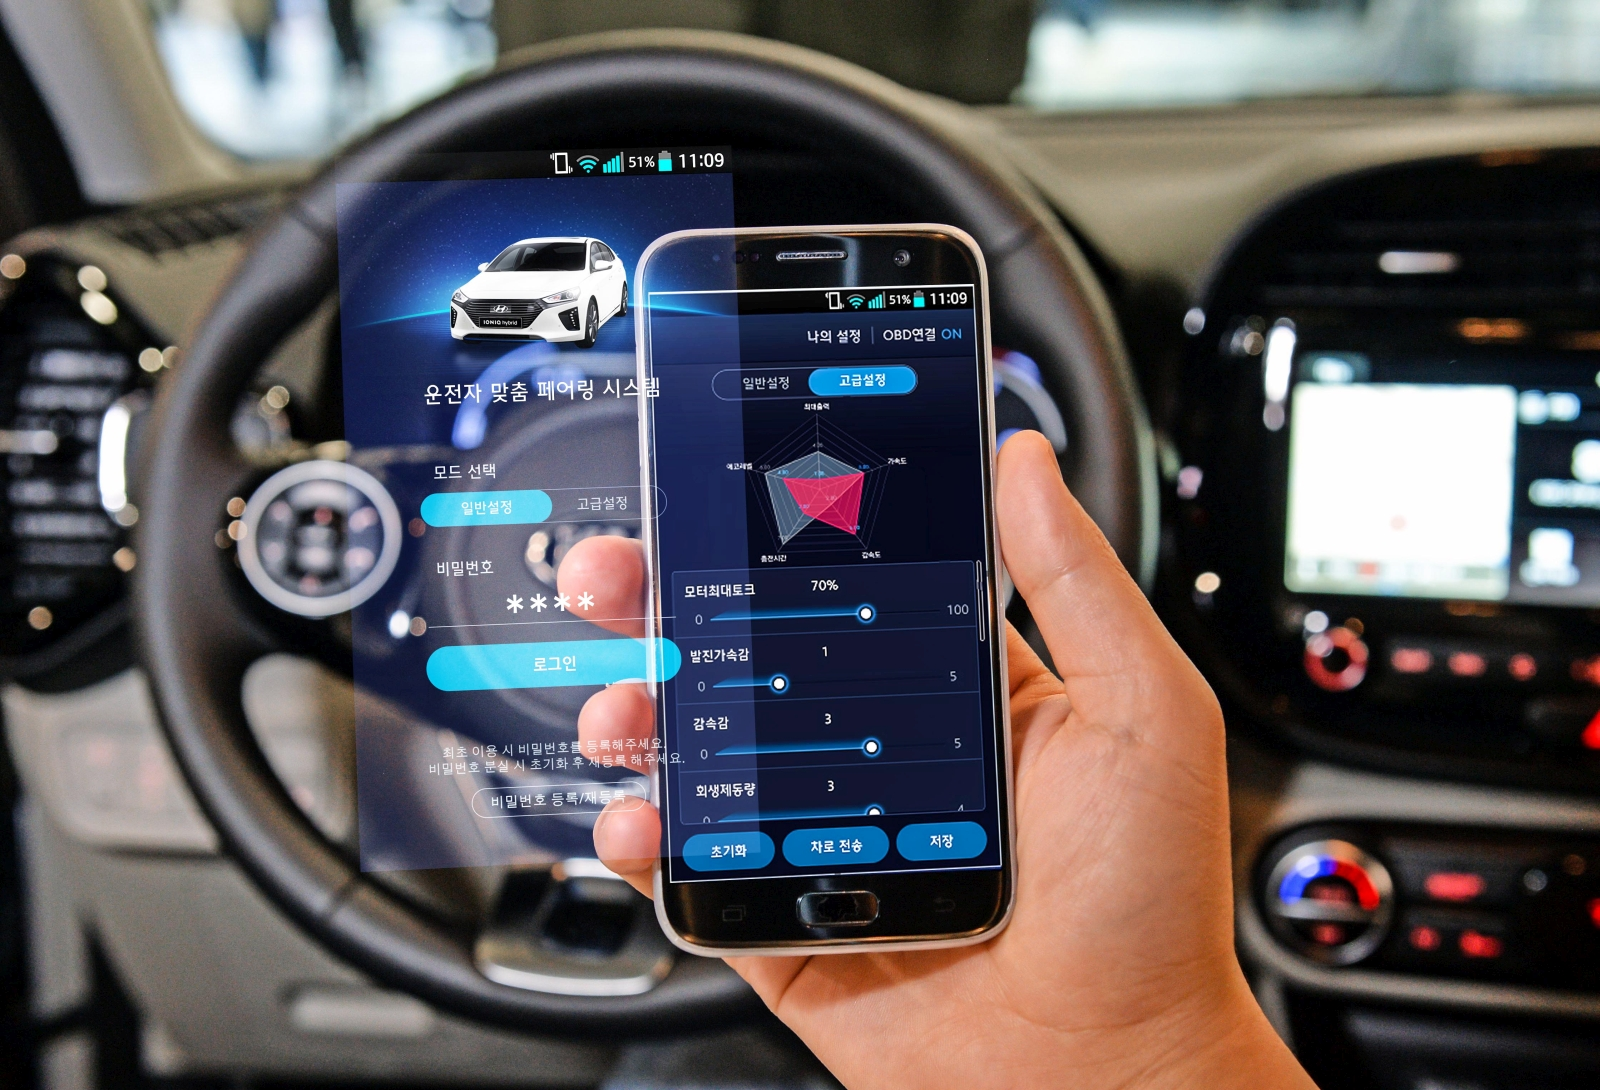 Hyundai Introduces Smartphone Based EV Performance Control Technology